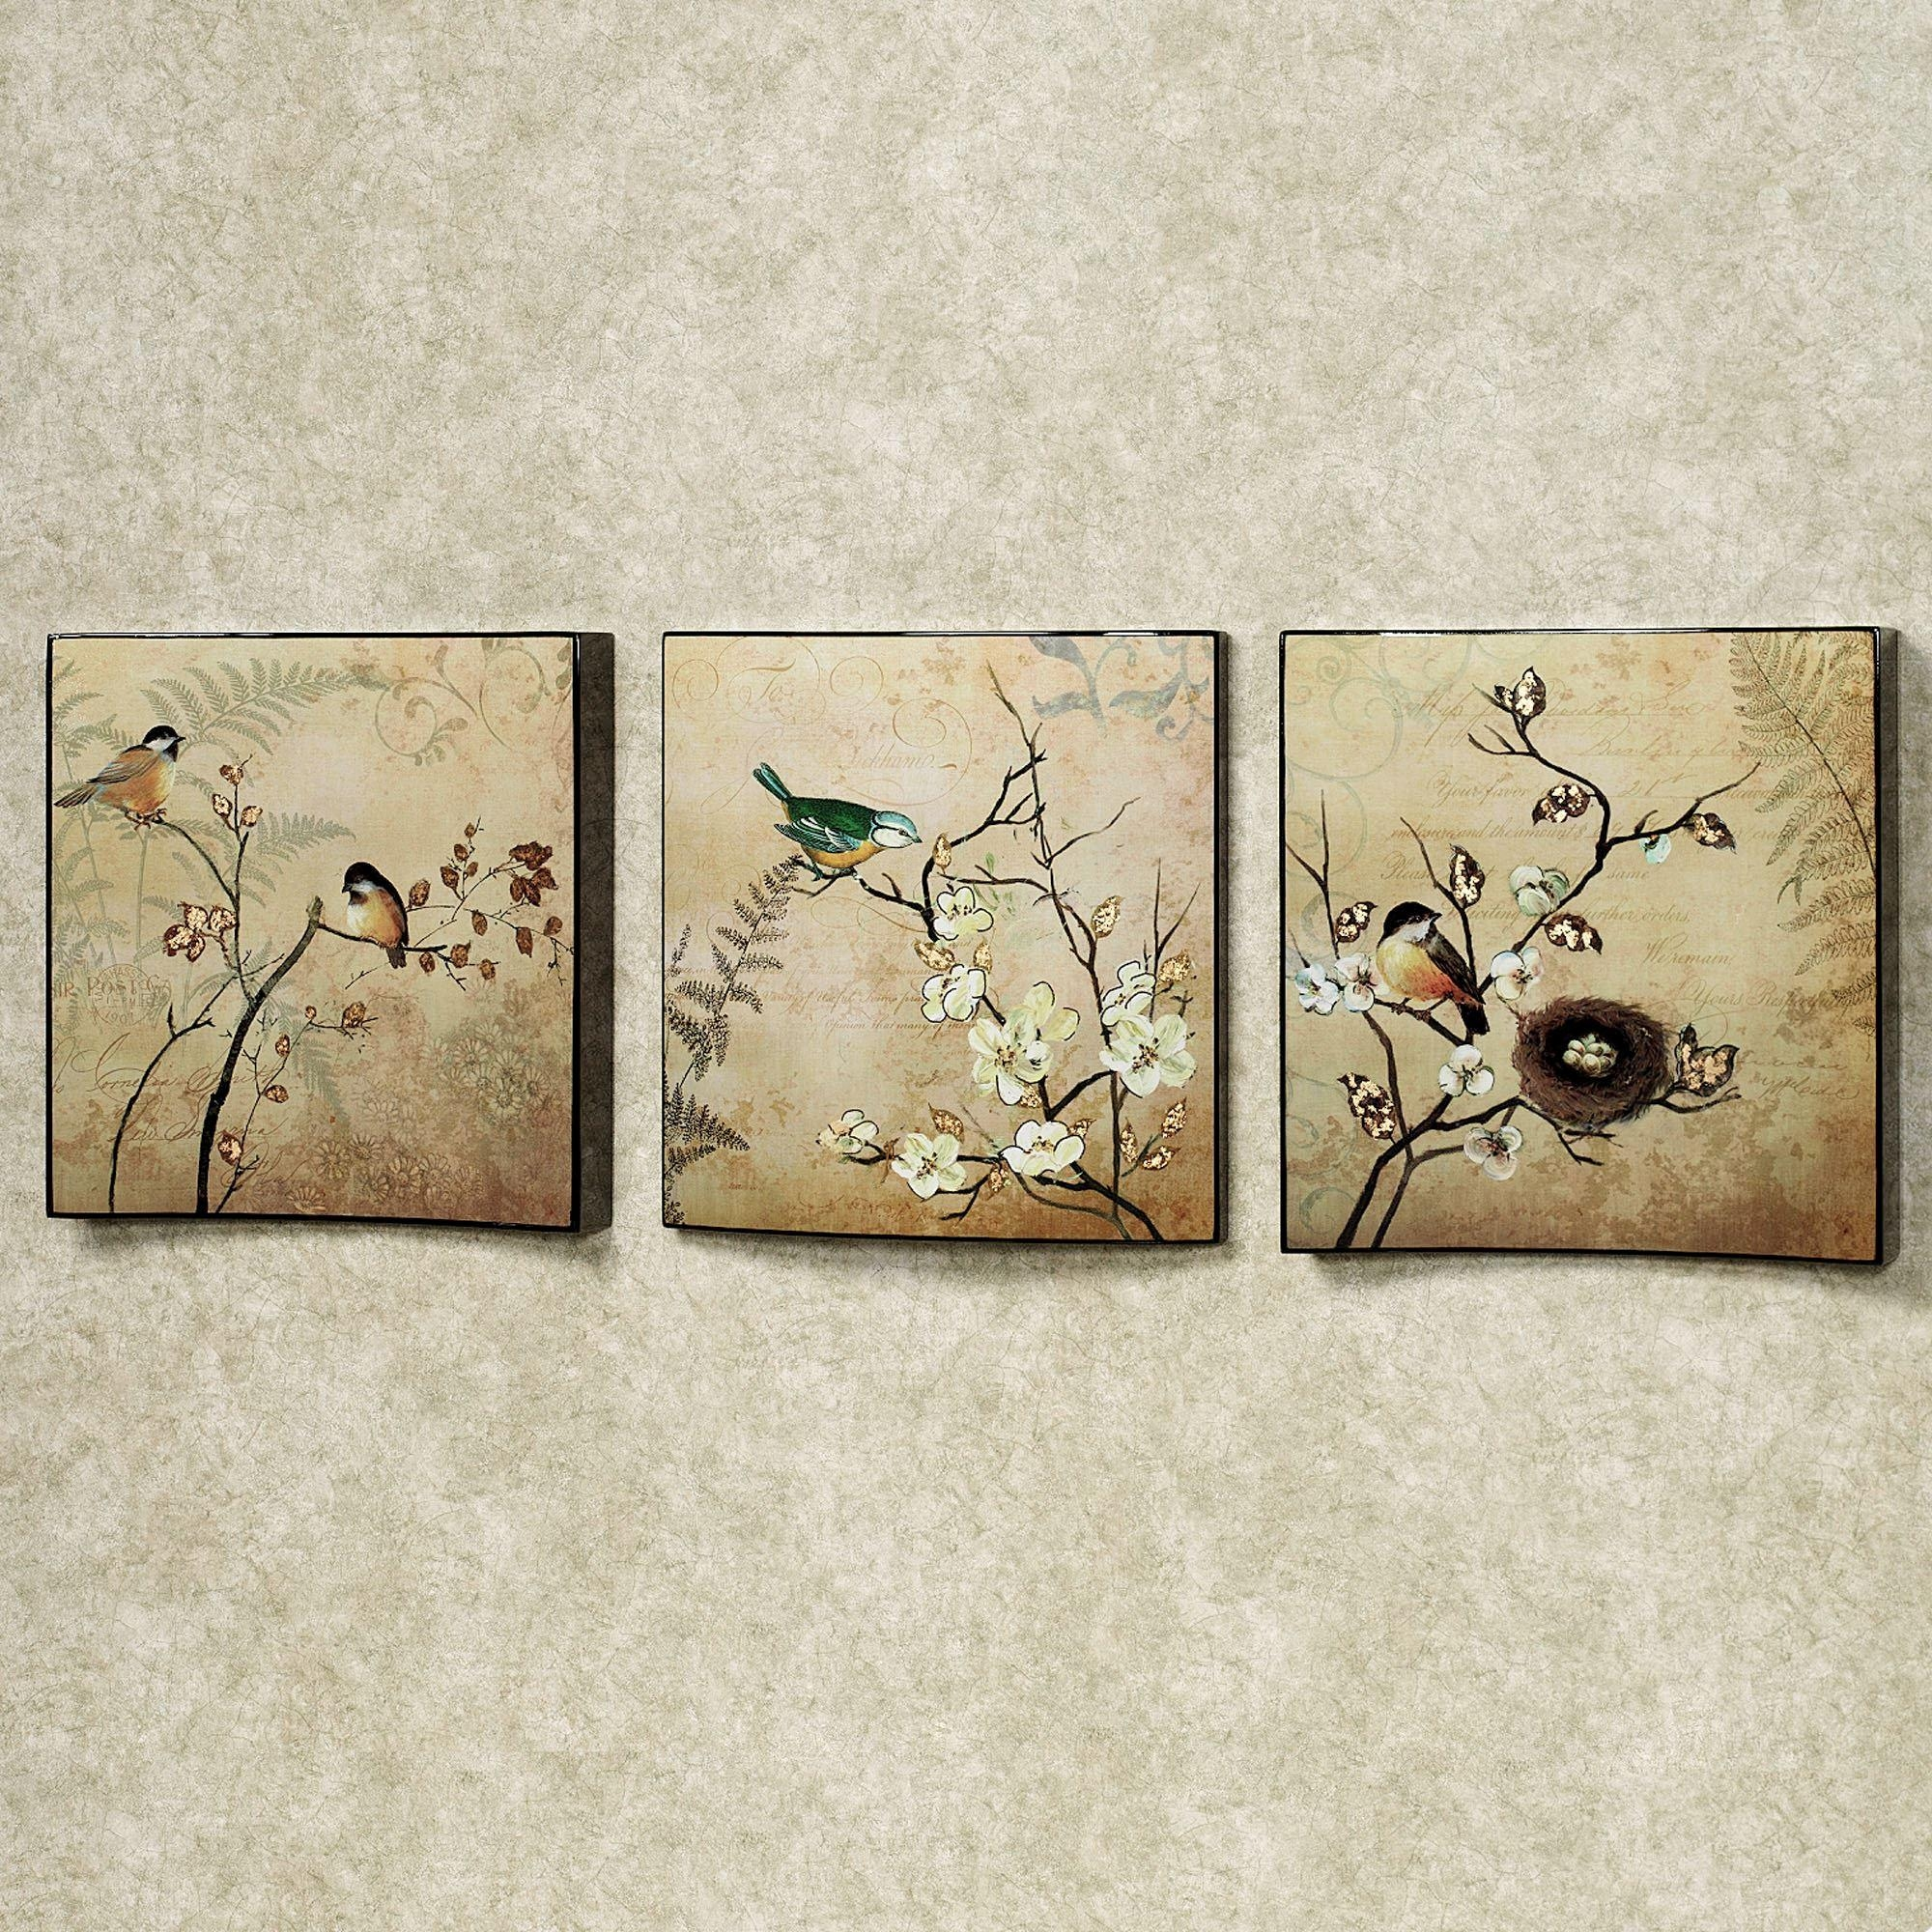 Bird Wall Art On Wallpaperget Intended For Flock Of Birds Metal Wall Art (View 16 of 20)